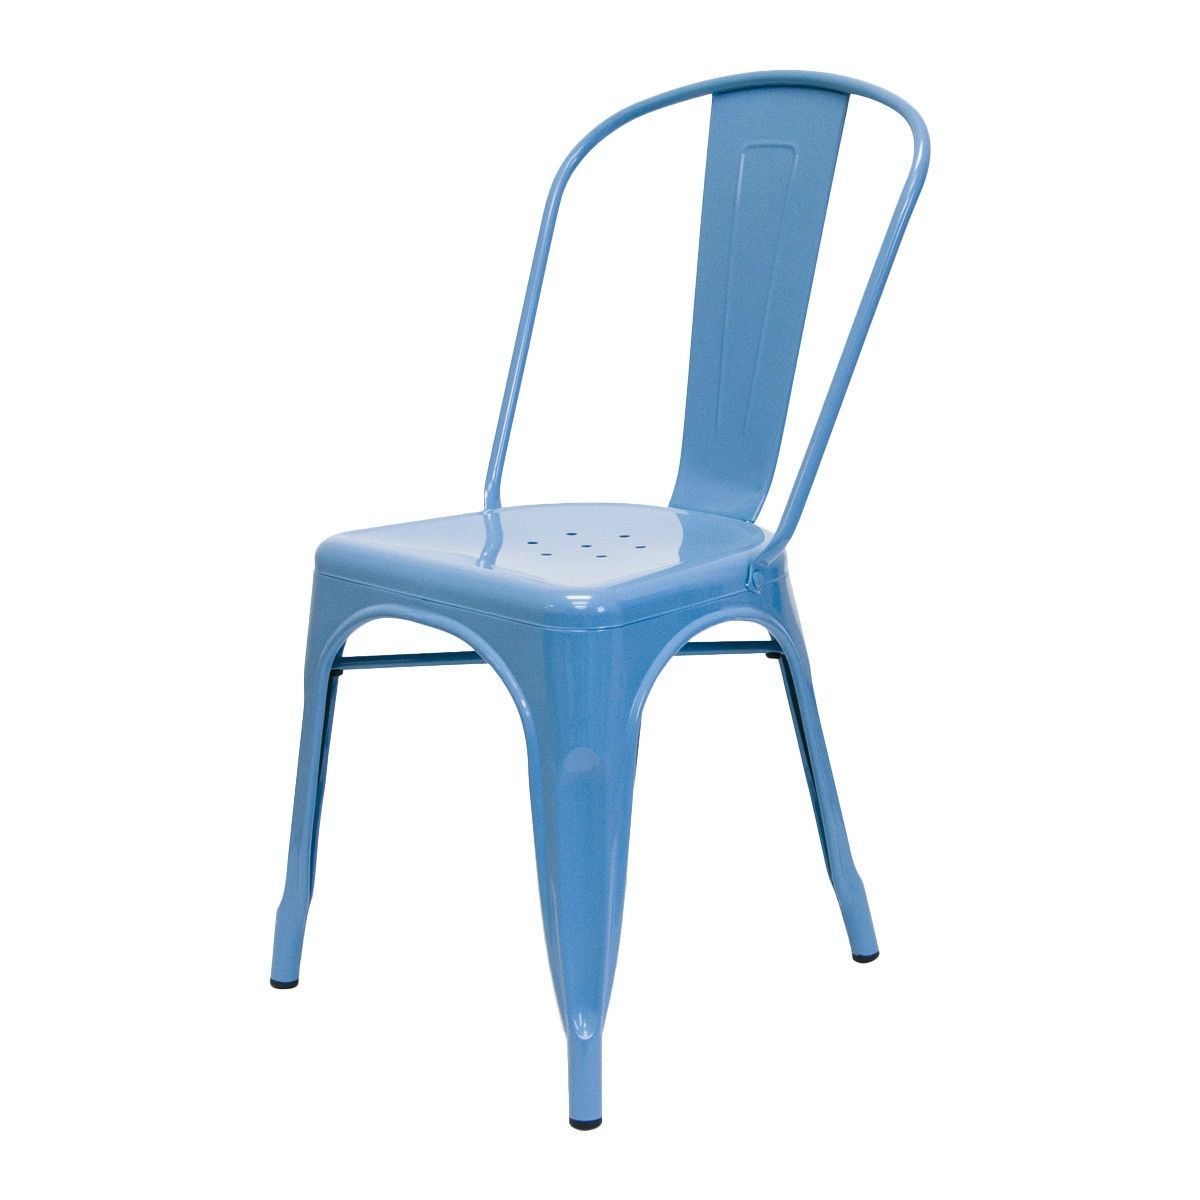 Set of 2 - Galvanized Steel Stacking Dining Side Chair Indoor Outdoor Blue Finish